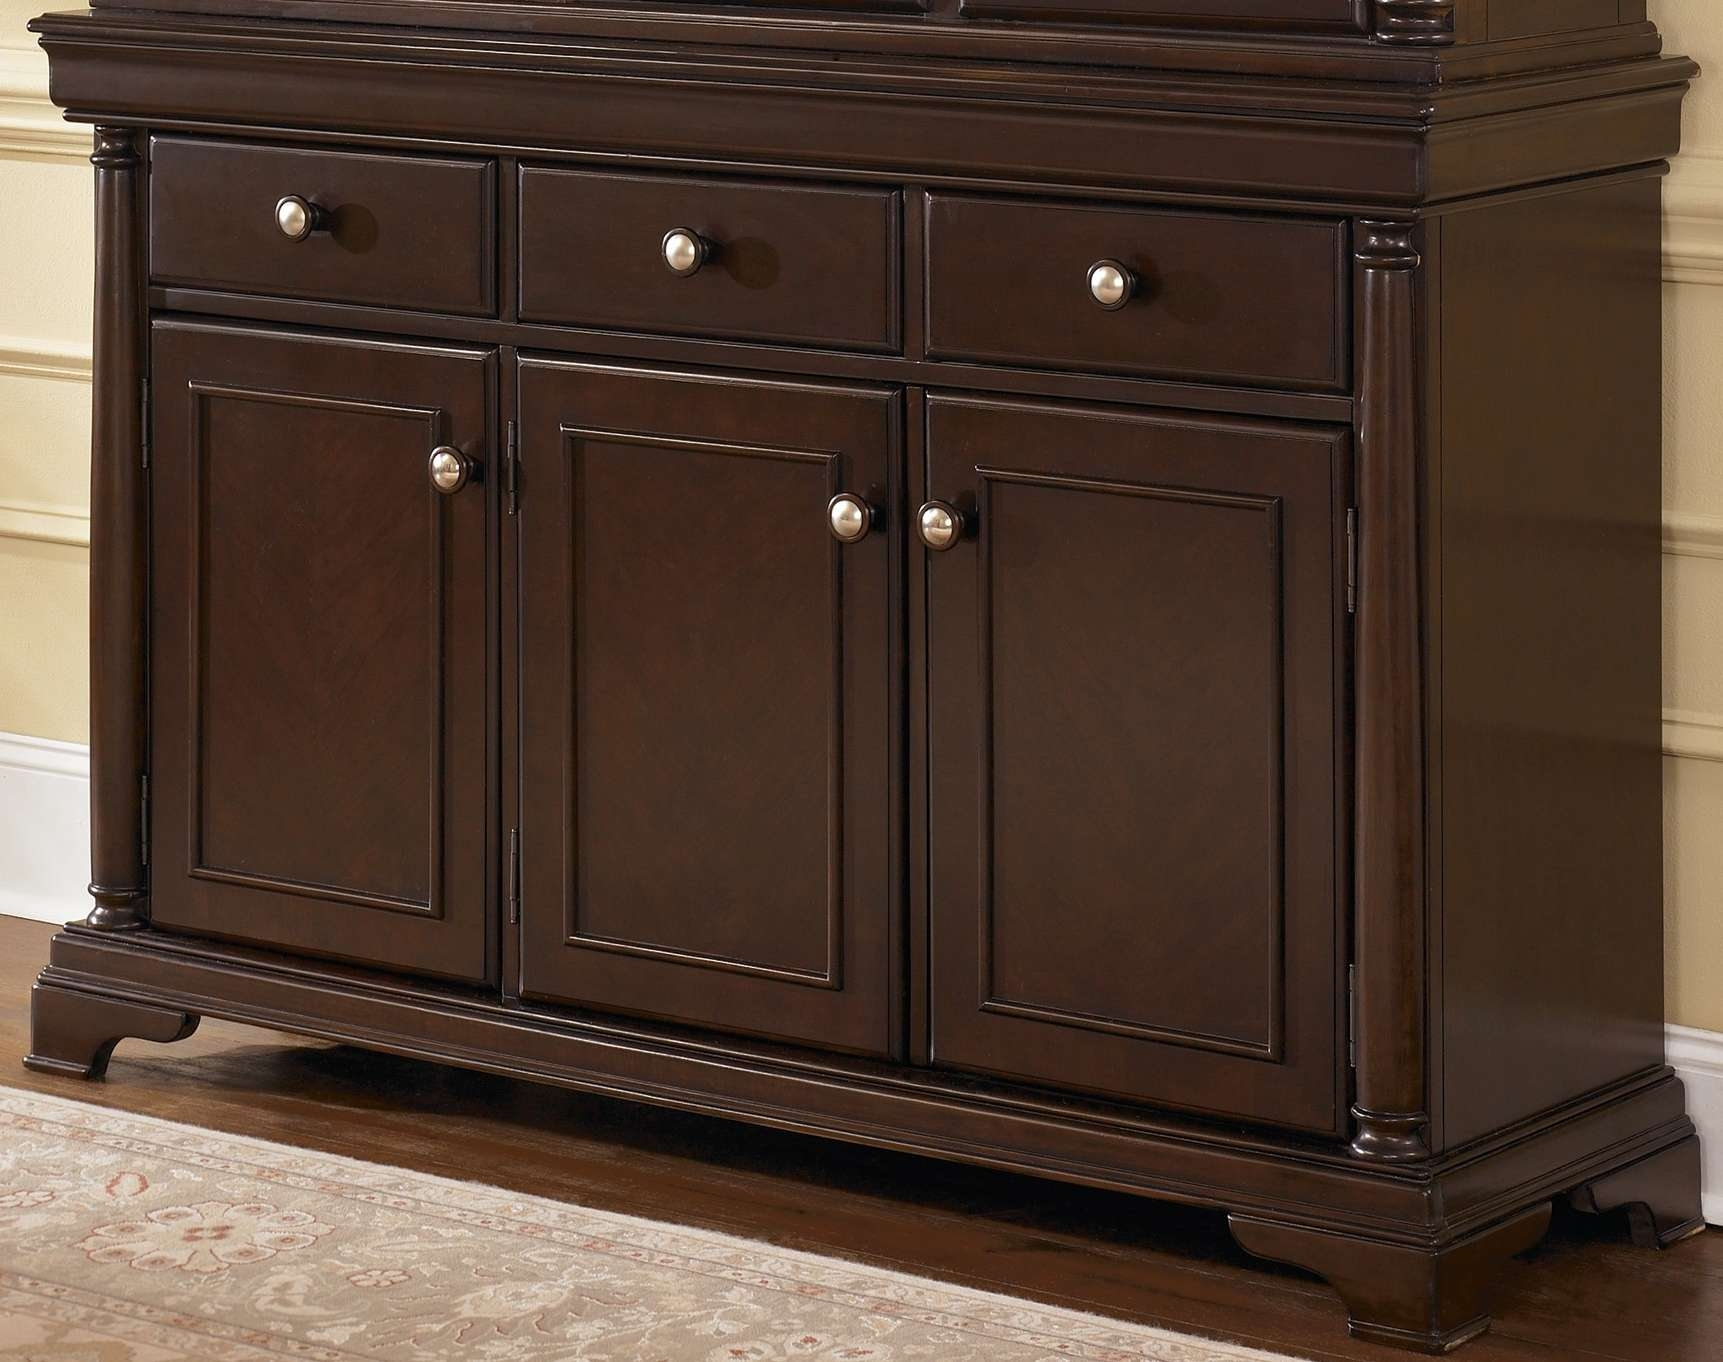 Dining Room Credenza Ideas Including Buffet Cabinet Pictures Within Dining Room Sideboards And Buffets (View 17 of 20)